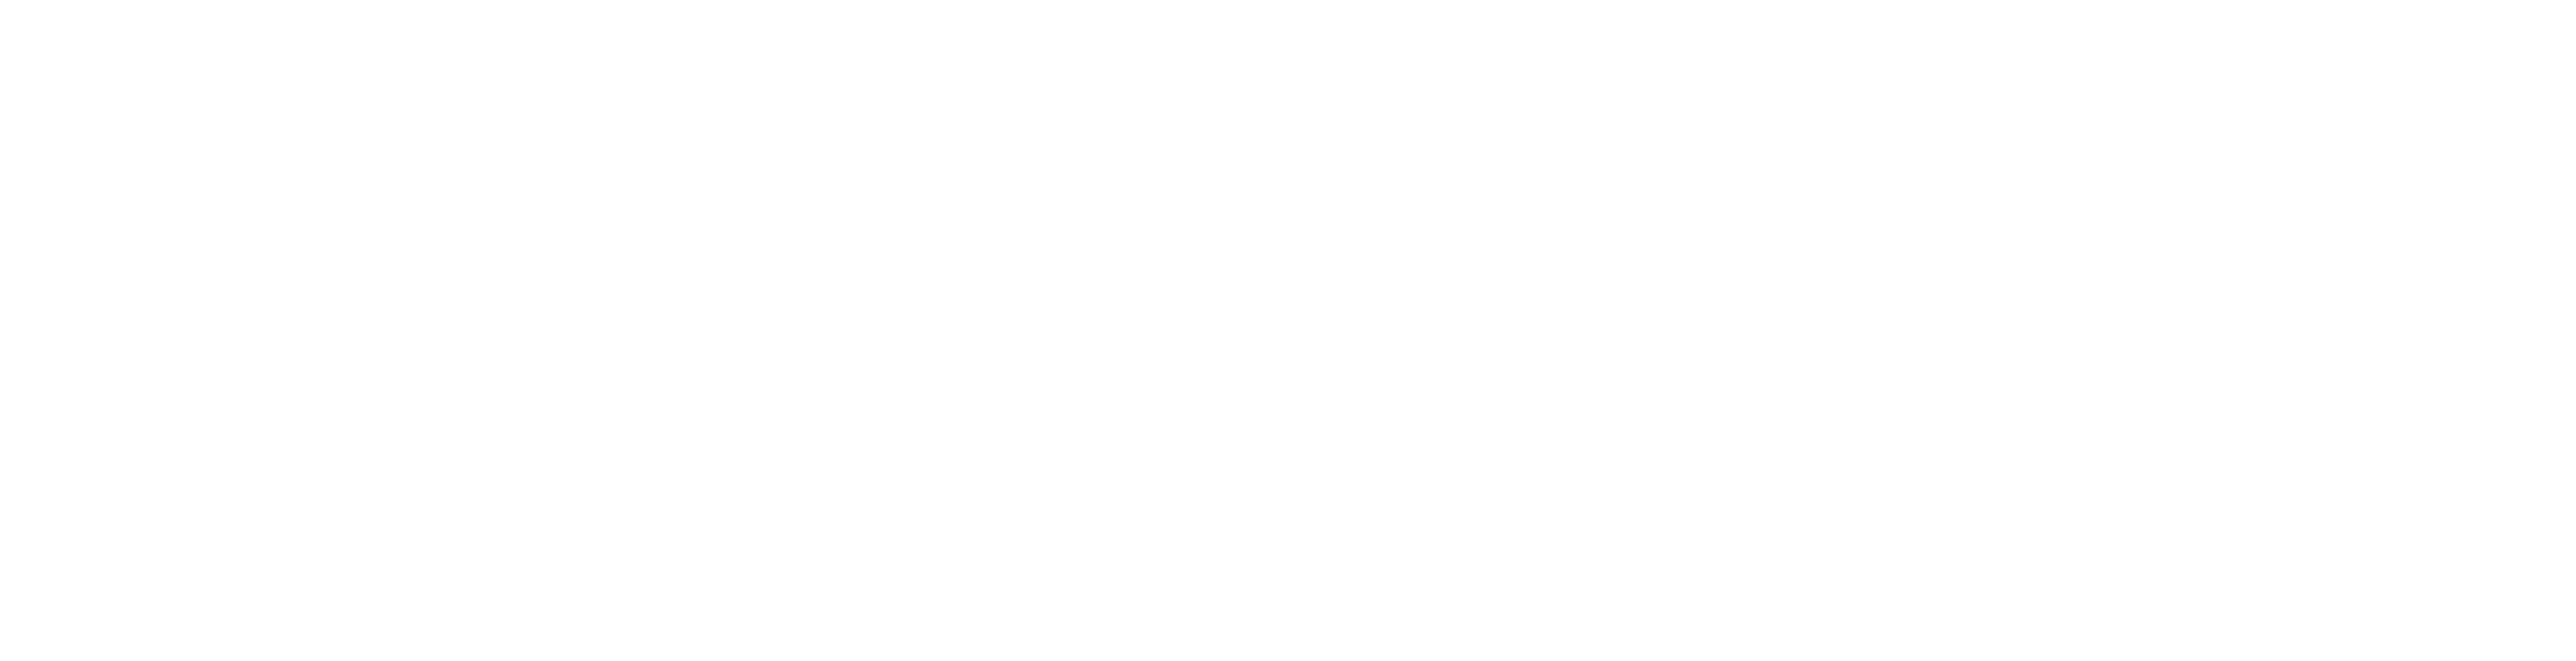 News, feature release round-ups and behind-the-scenes of the Captivate.fm podcast hosting, analytics & marketing platform.